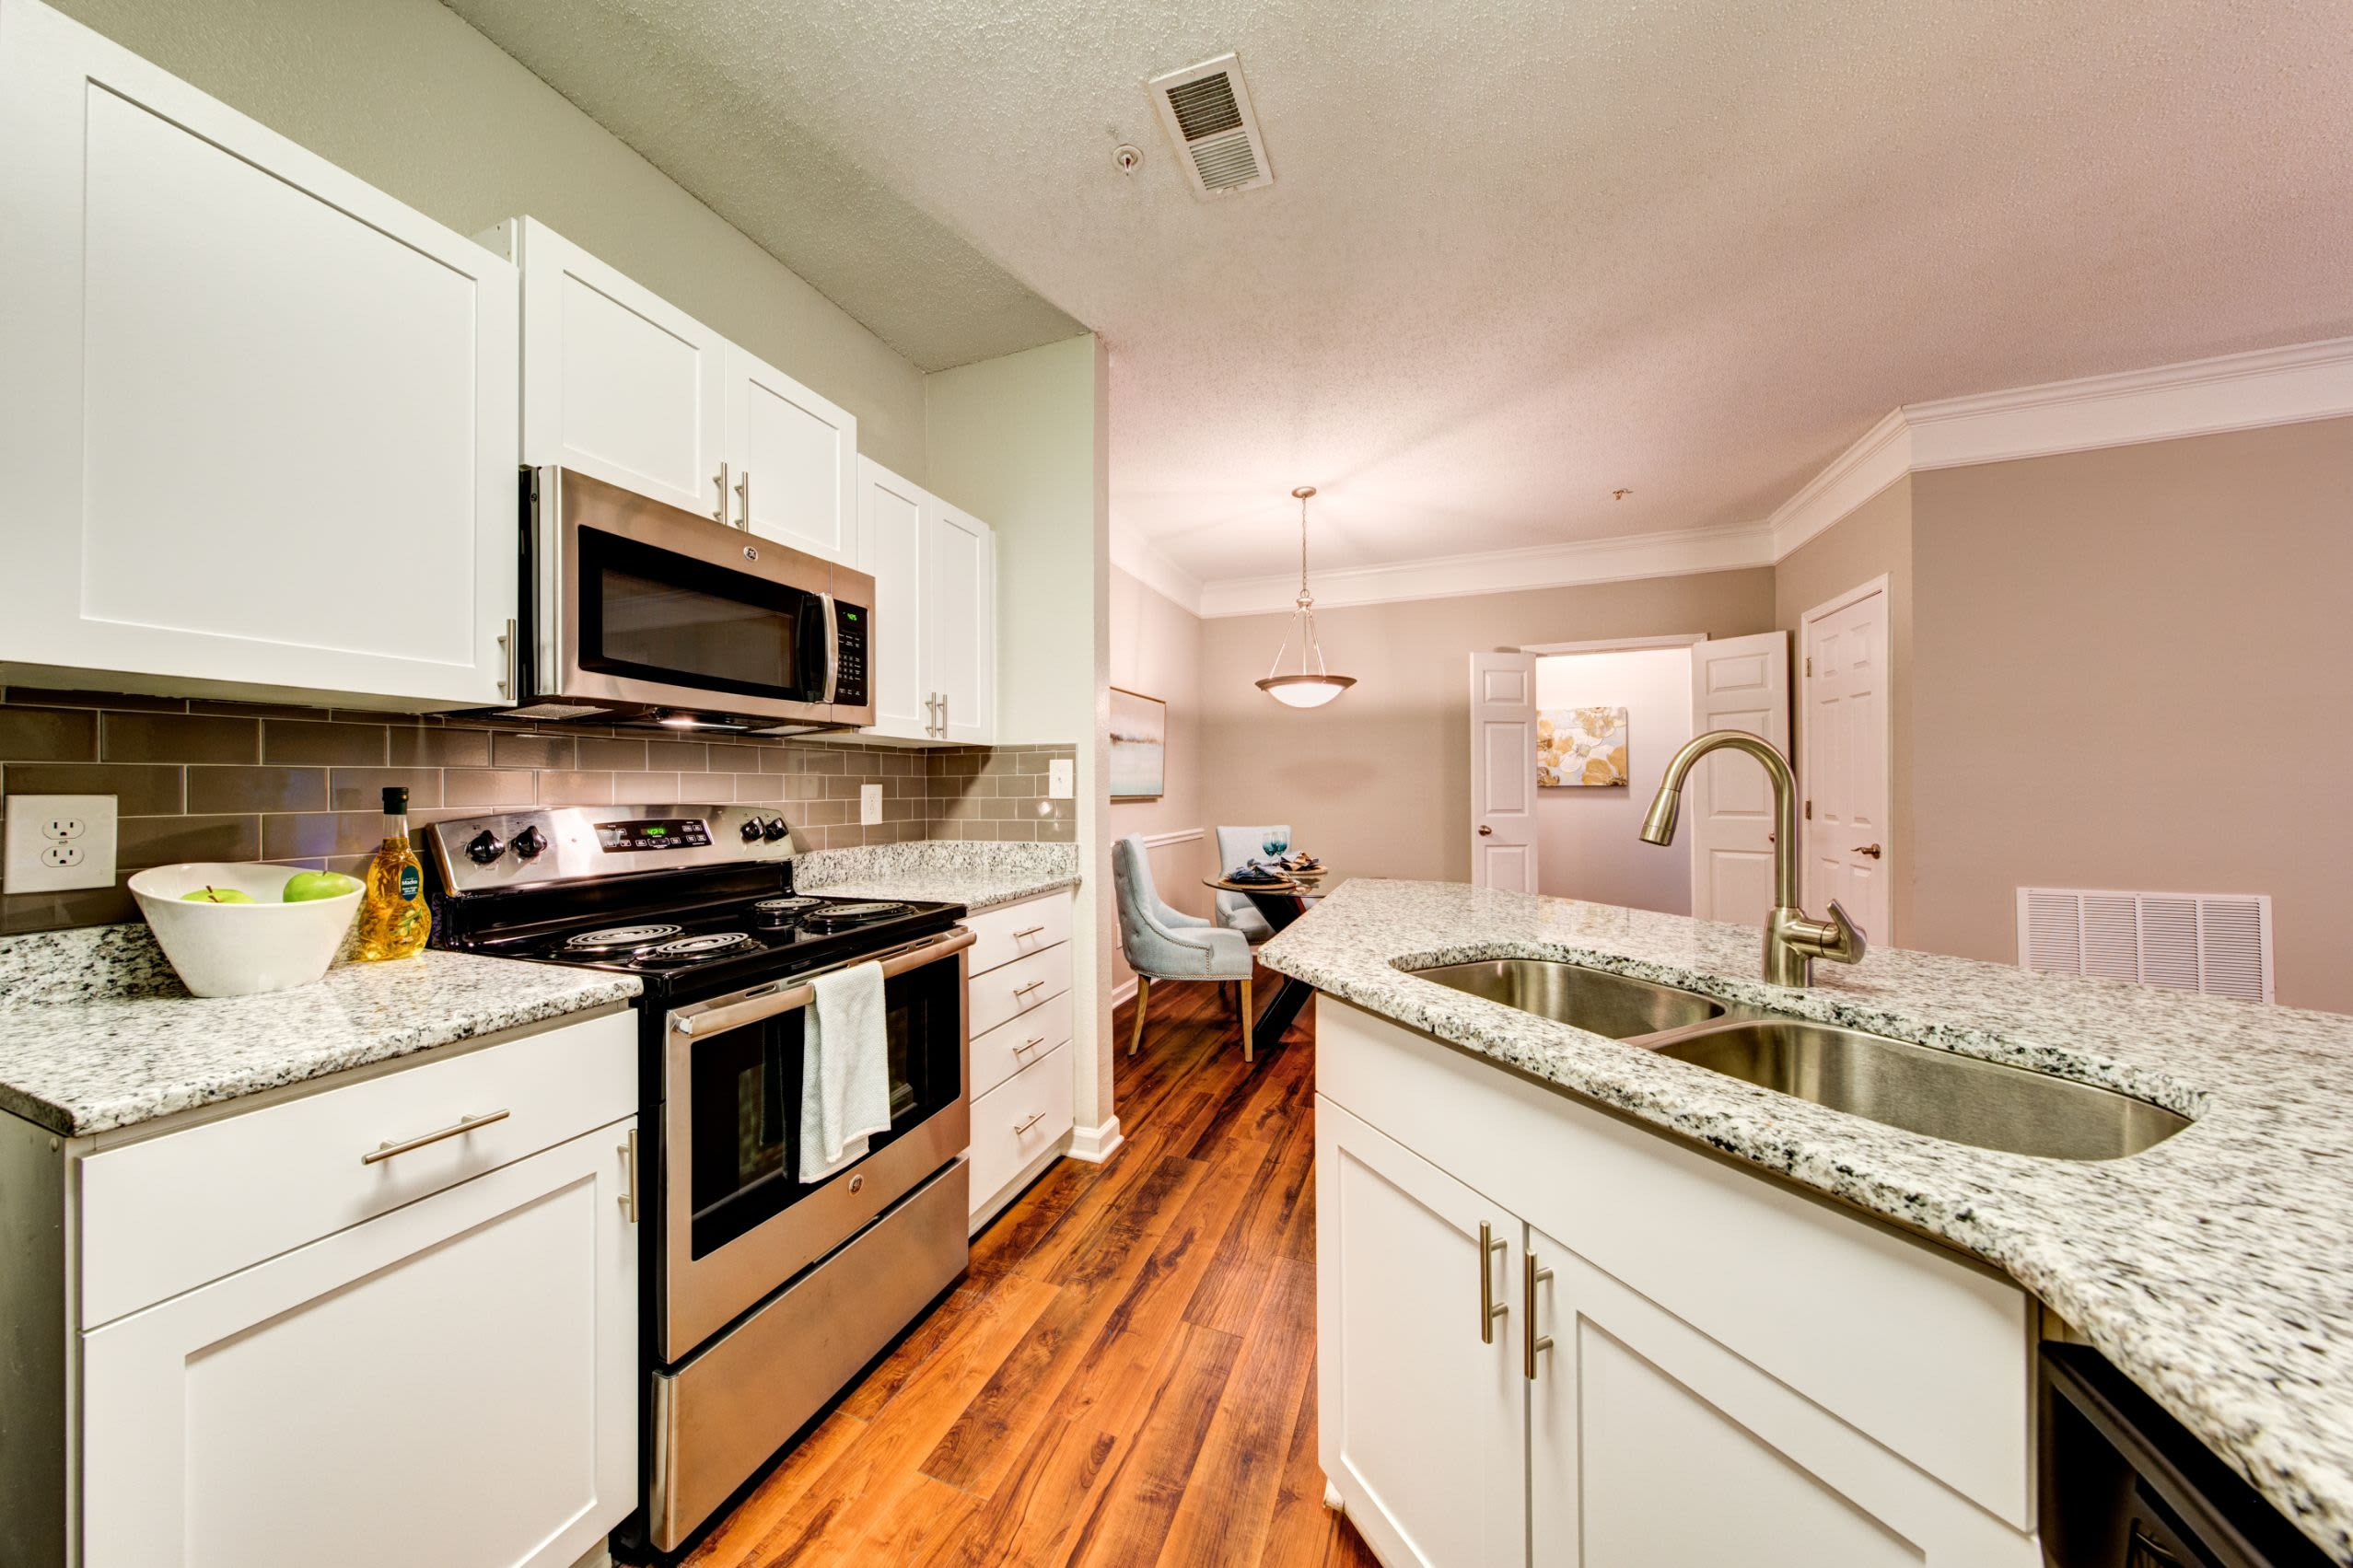 Bright kitchen with wood floors at Marquis on Edwards Mill in Raleigh, North Carolina